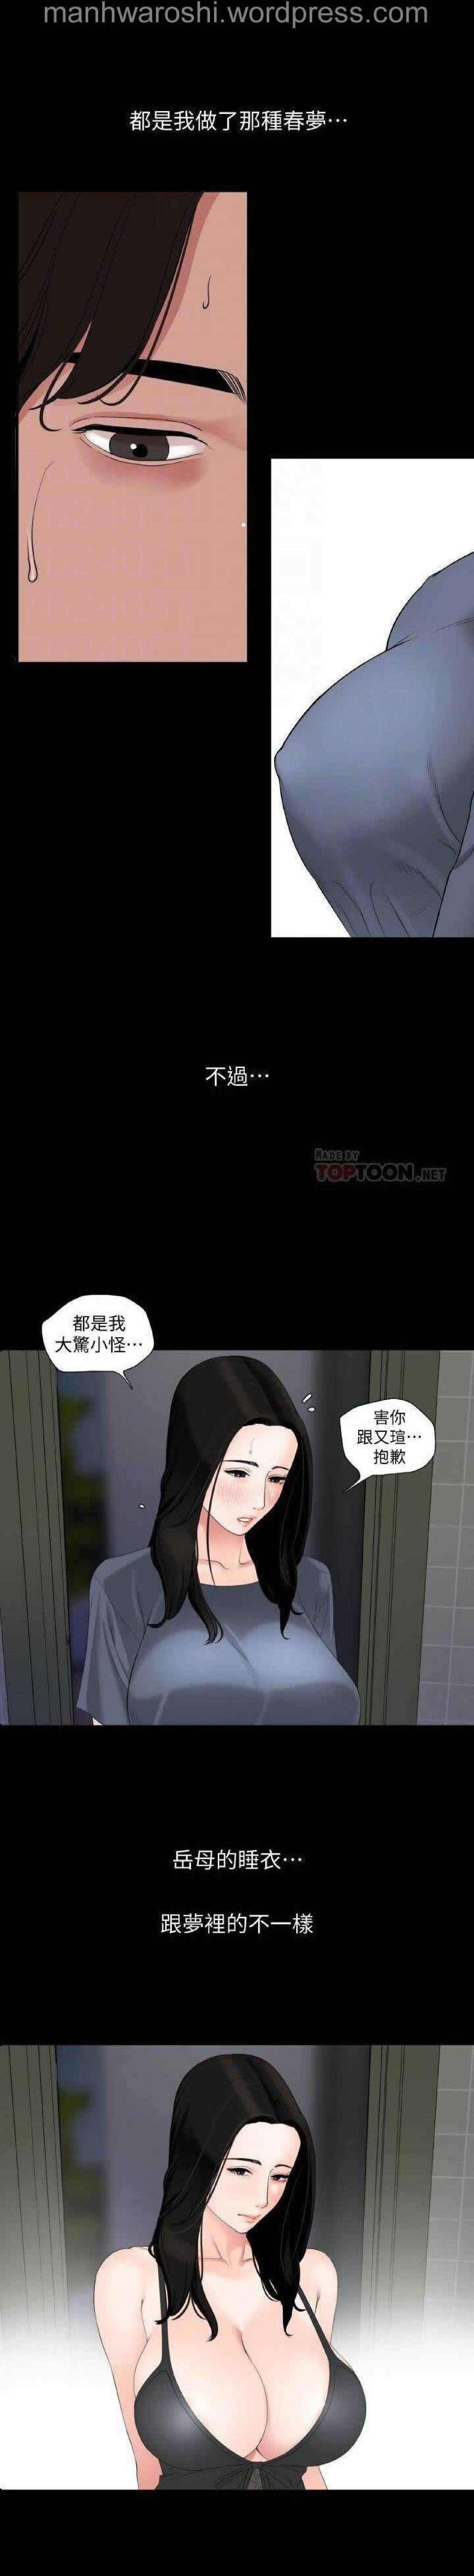 Don't Be Like This! Son-In-Law | 与岳母同屋 第 7 [Chinese] Manhwa 5